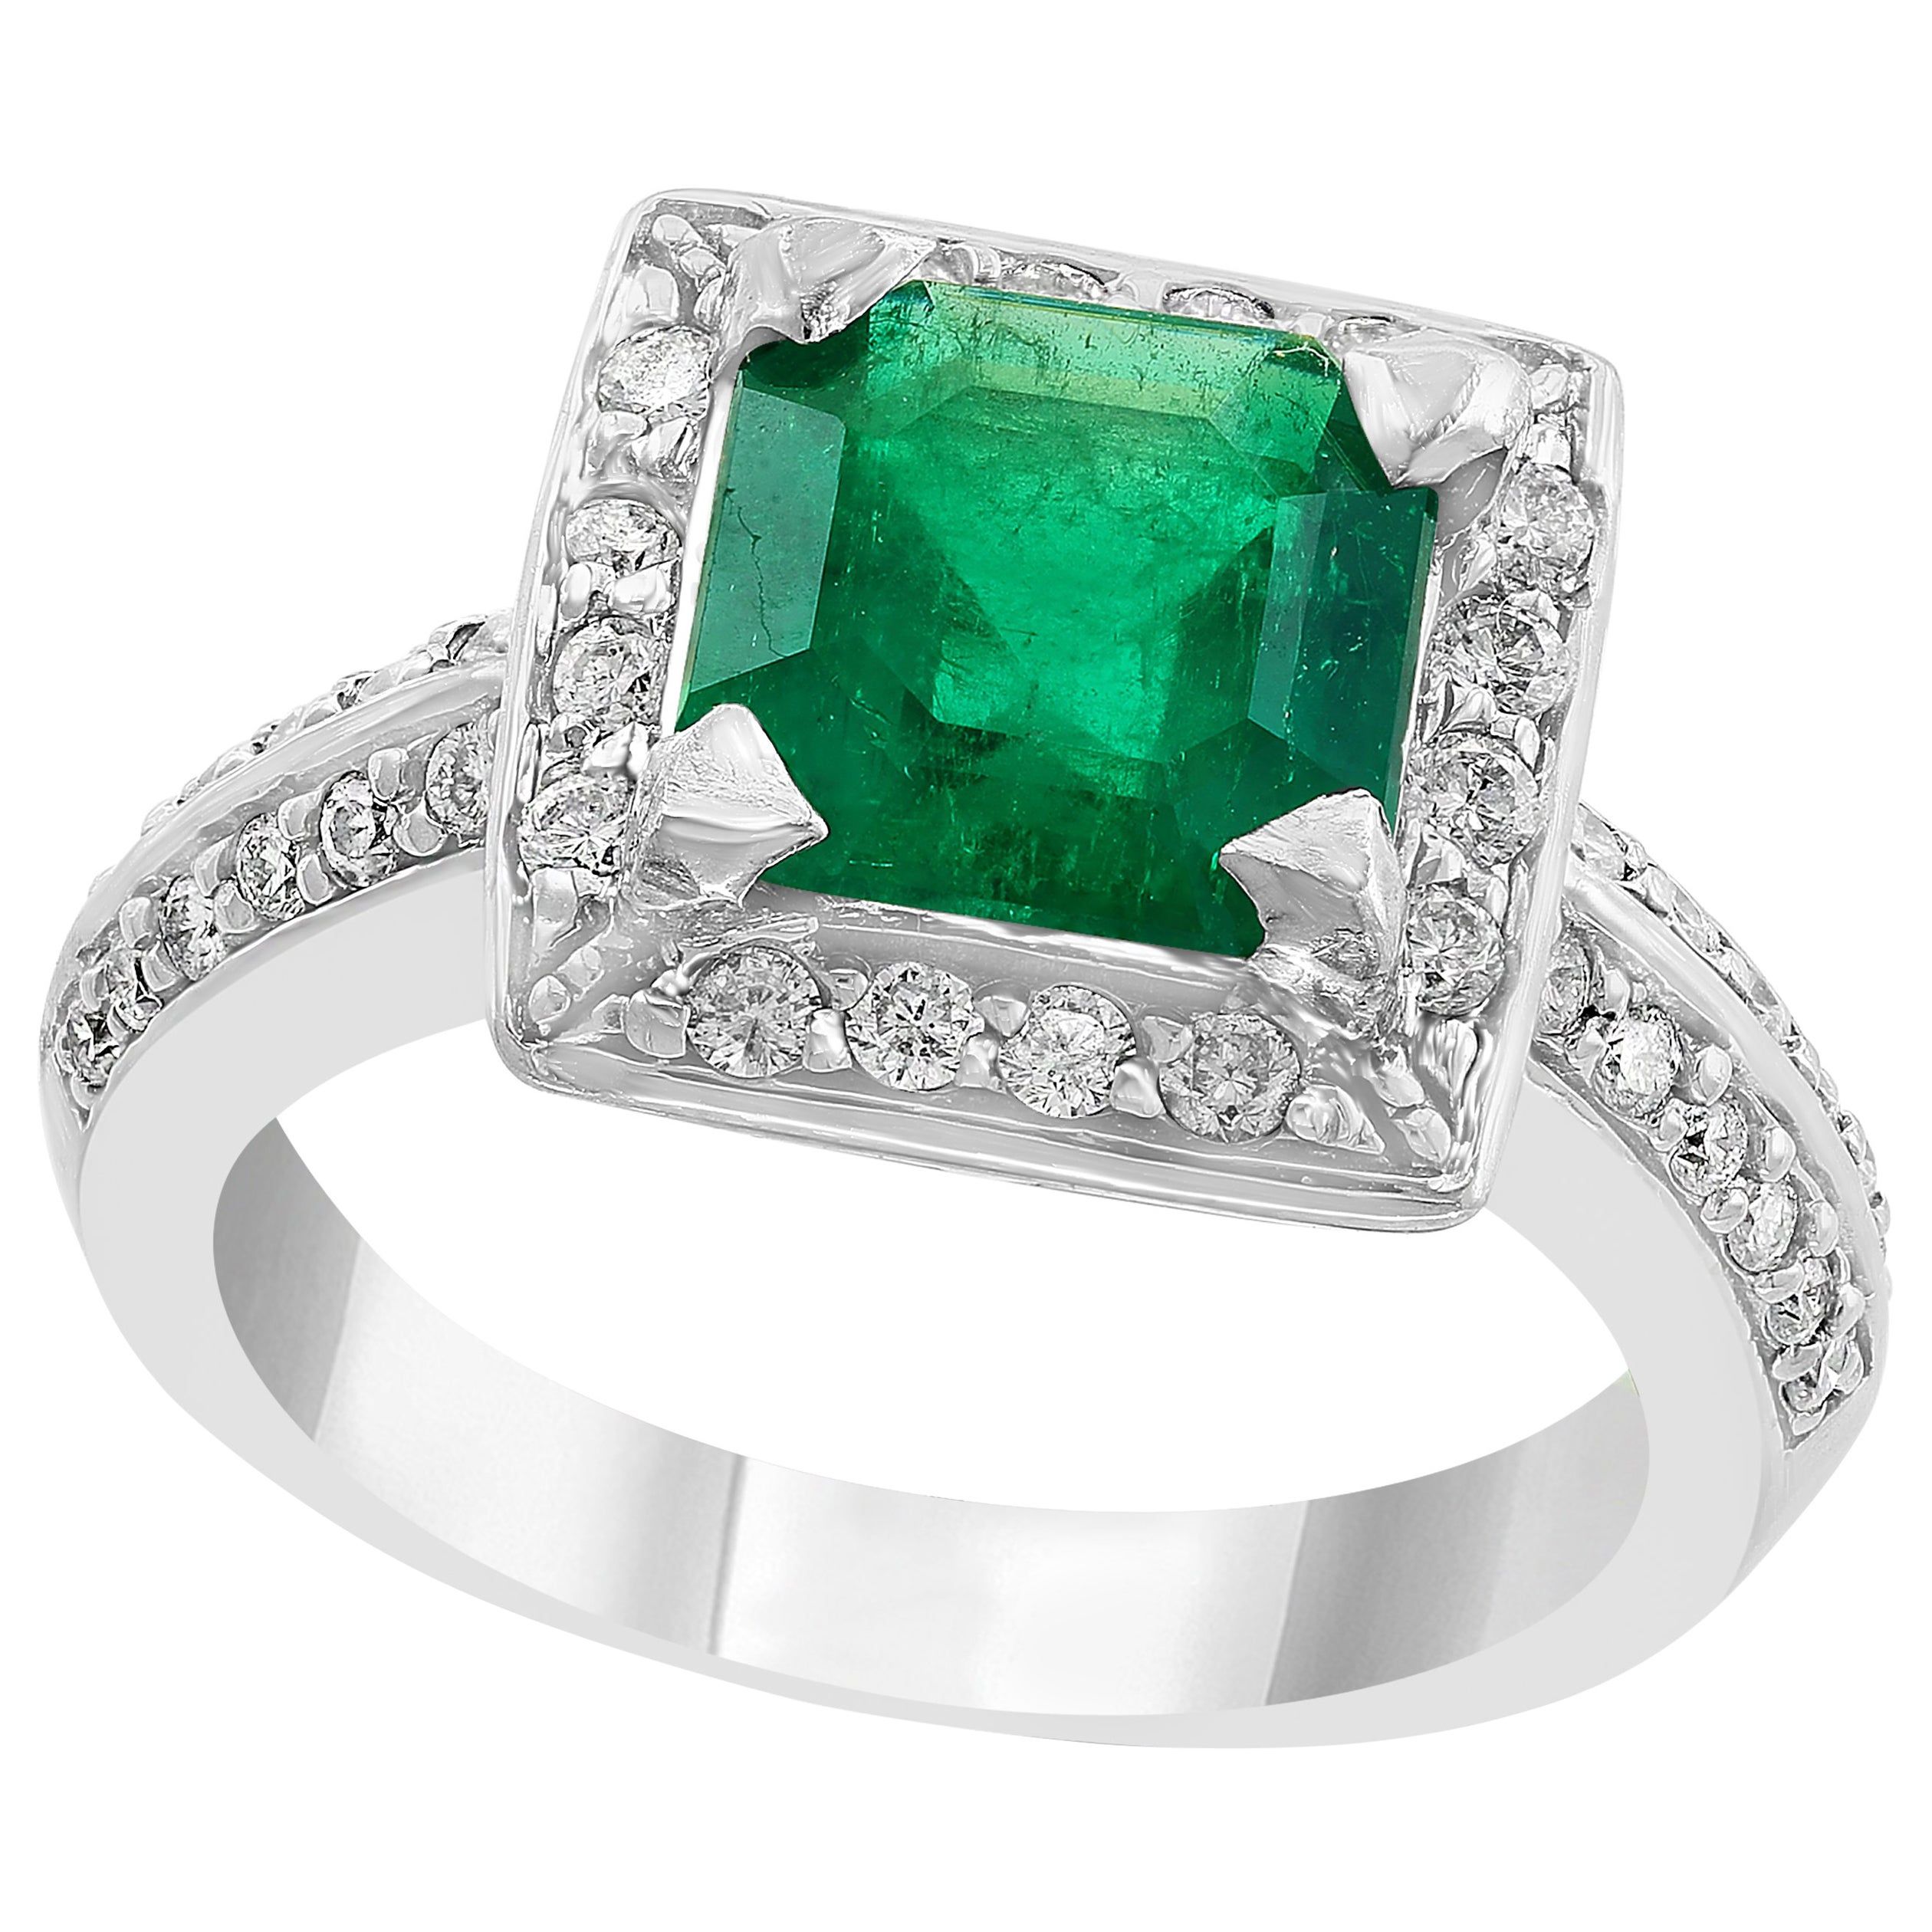 2.8 Carat Emerald Cut Colombian Emerald and Diamond Ring Estate